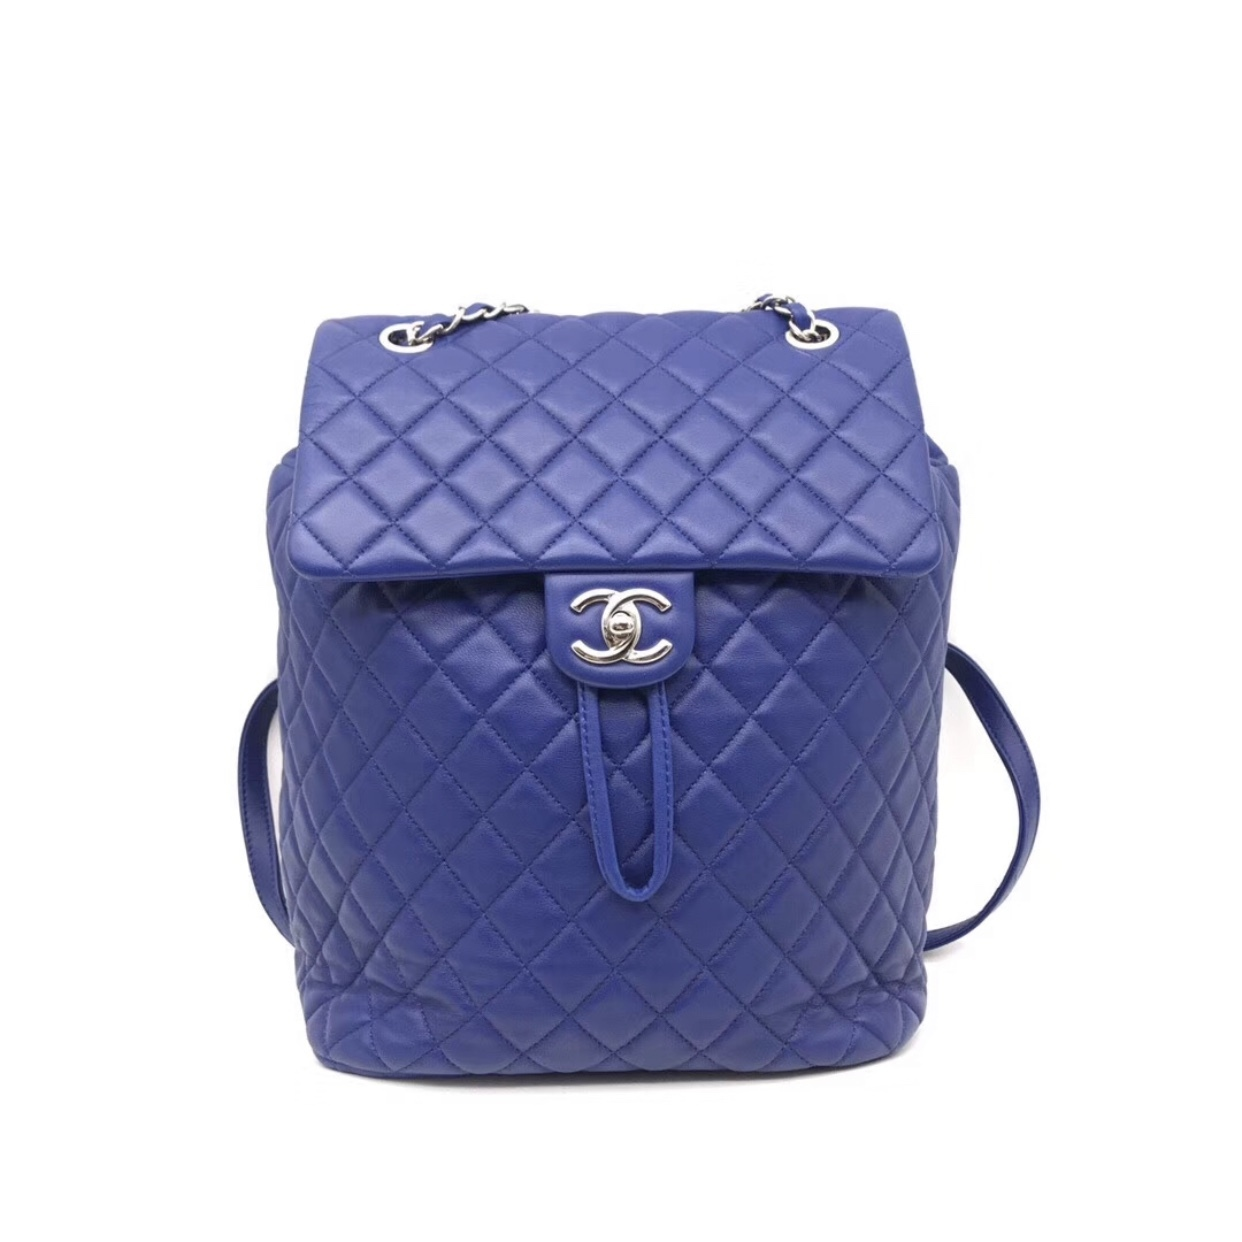 AUTHENTIC CHANEL ELECTRIC BLUE QUILTED LEATHER LARGE URBAN SPIRIT BACKPACK SHW